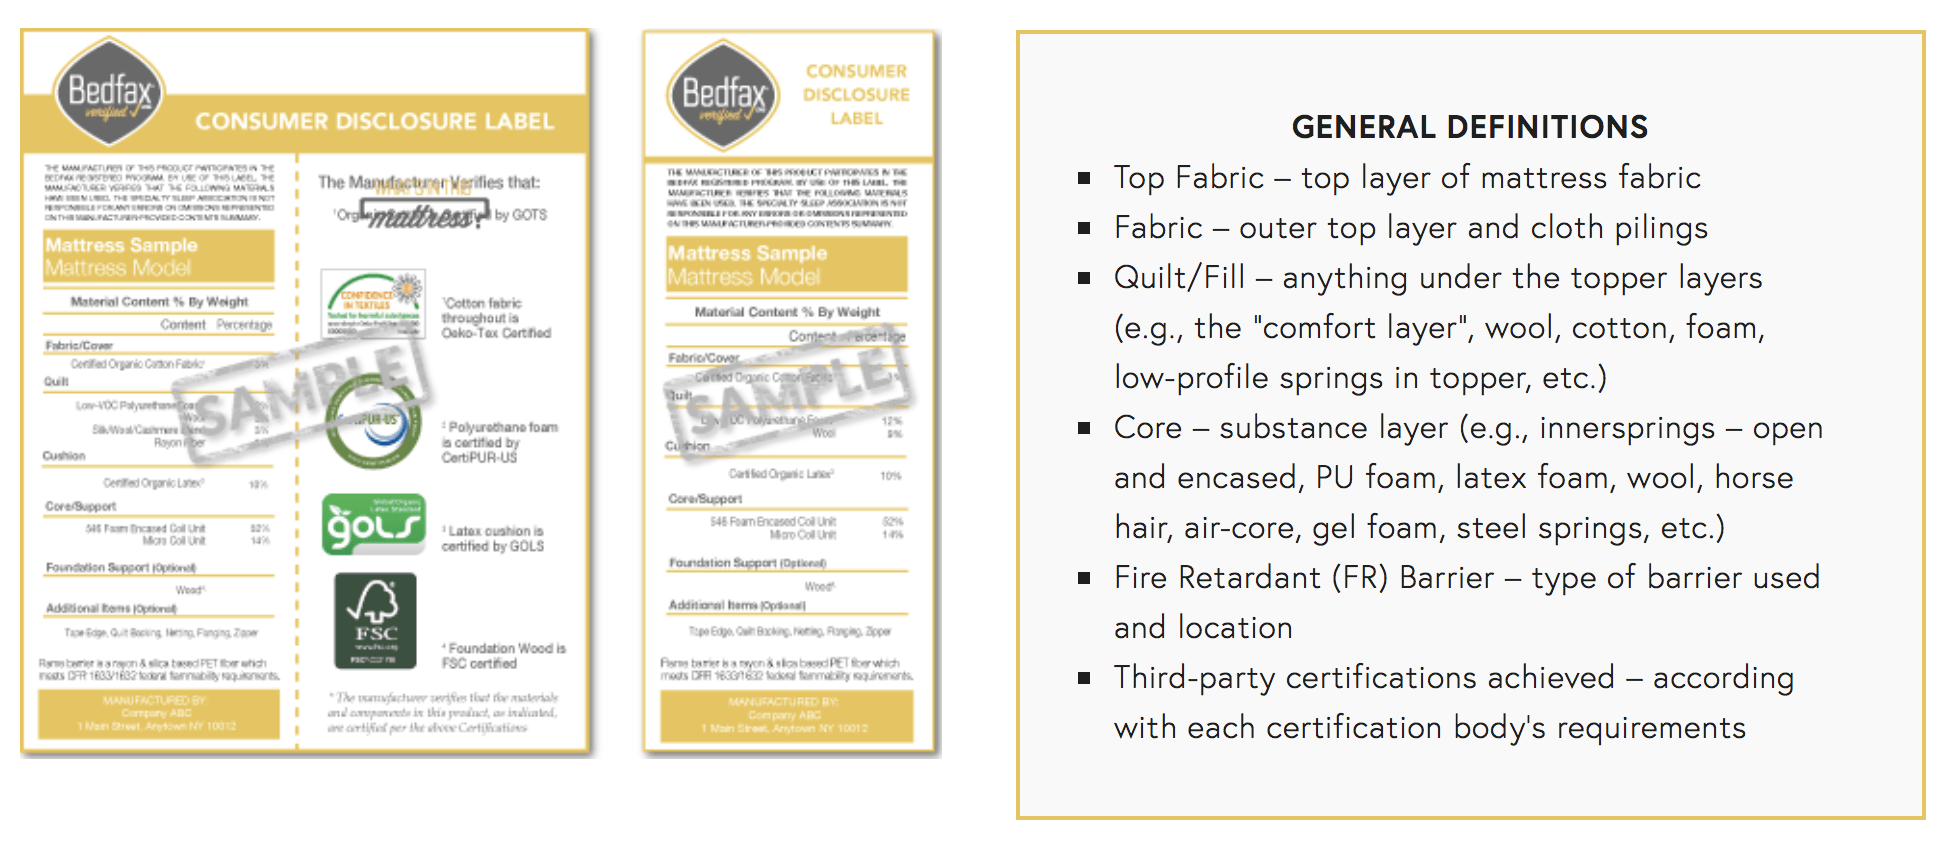 BedFax consumer disclosure label showing mattress contents (by weight) + certifications.